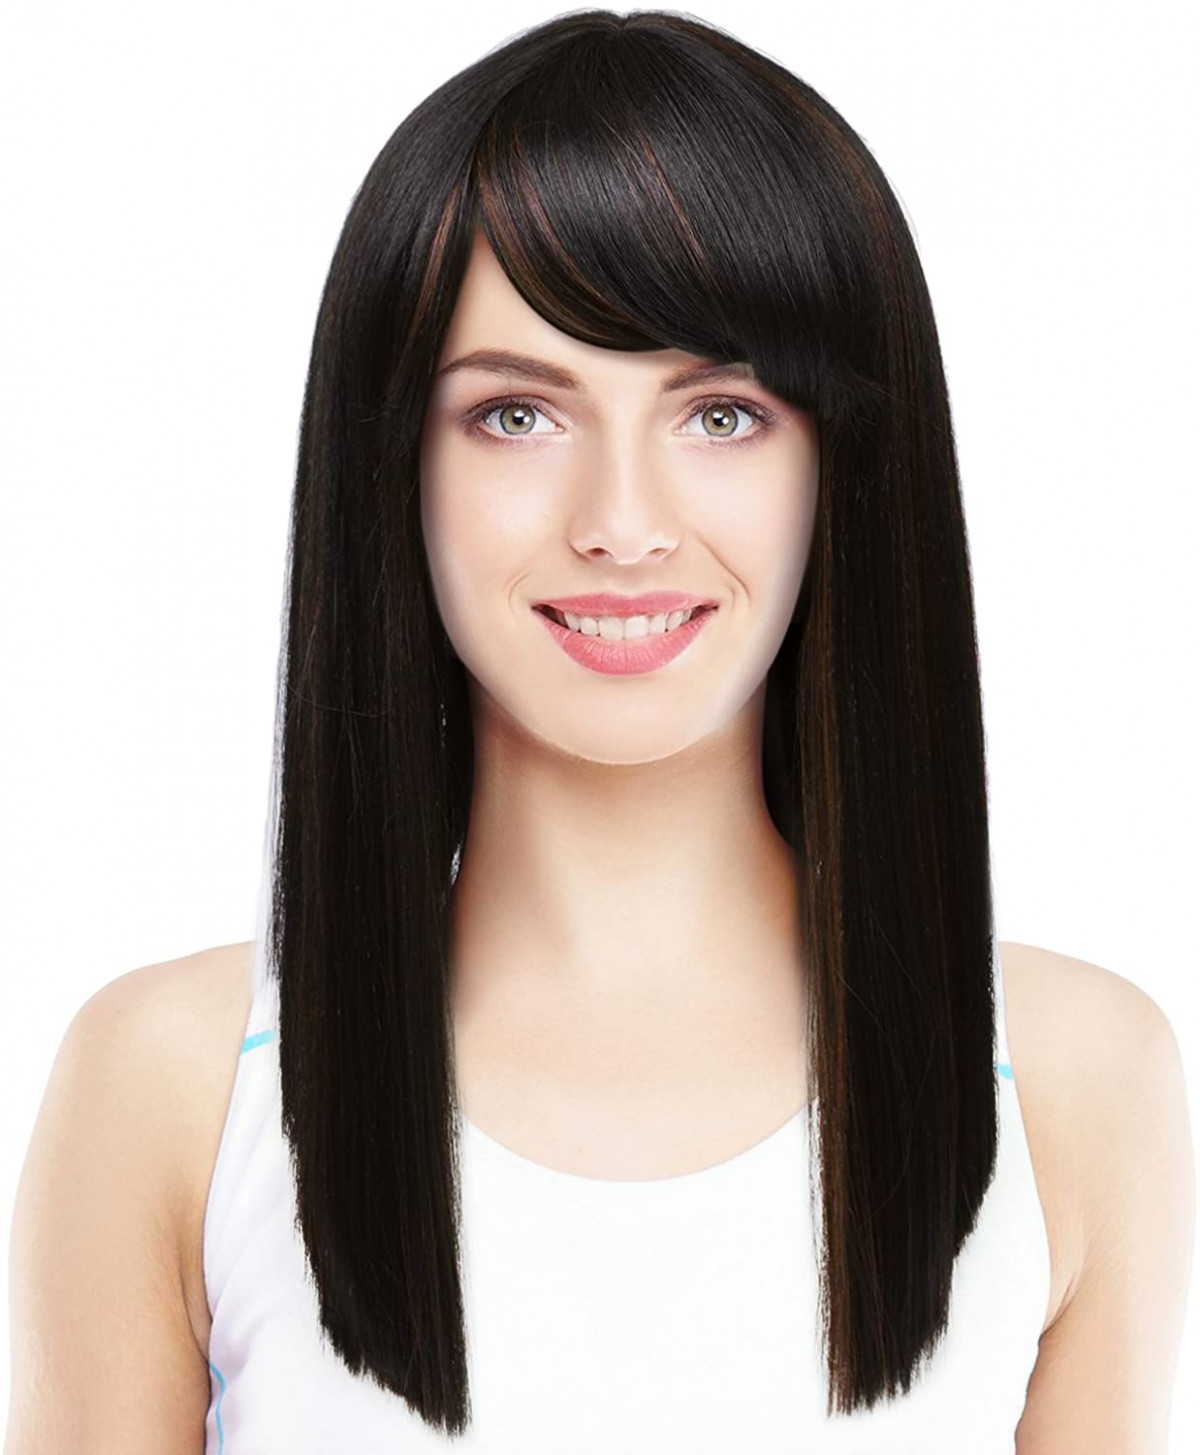 Silky Straight Wig with Bangs Natural Looking Medium Length Blunt Cut  Synthetic Full Hair Wig for Women